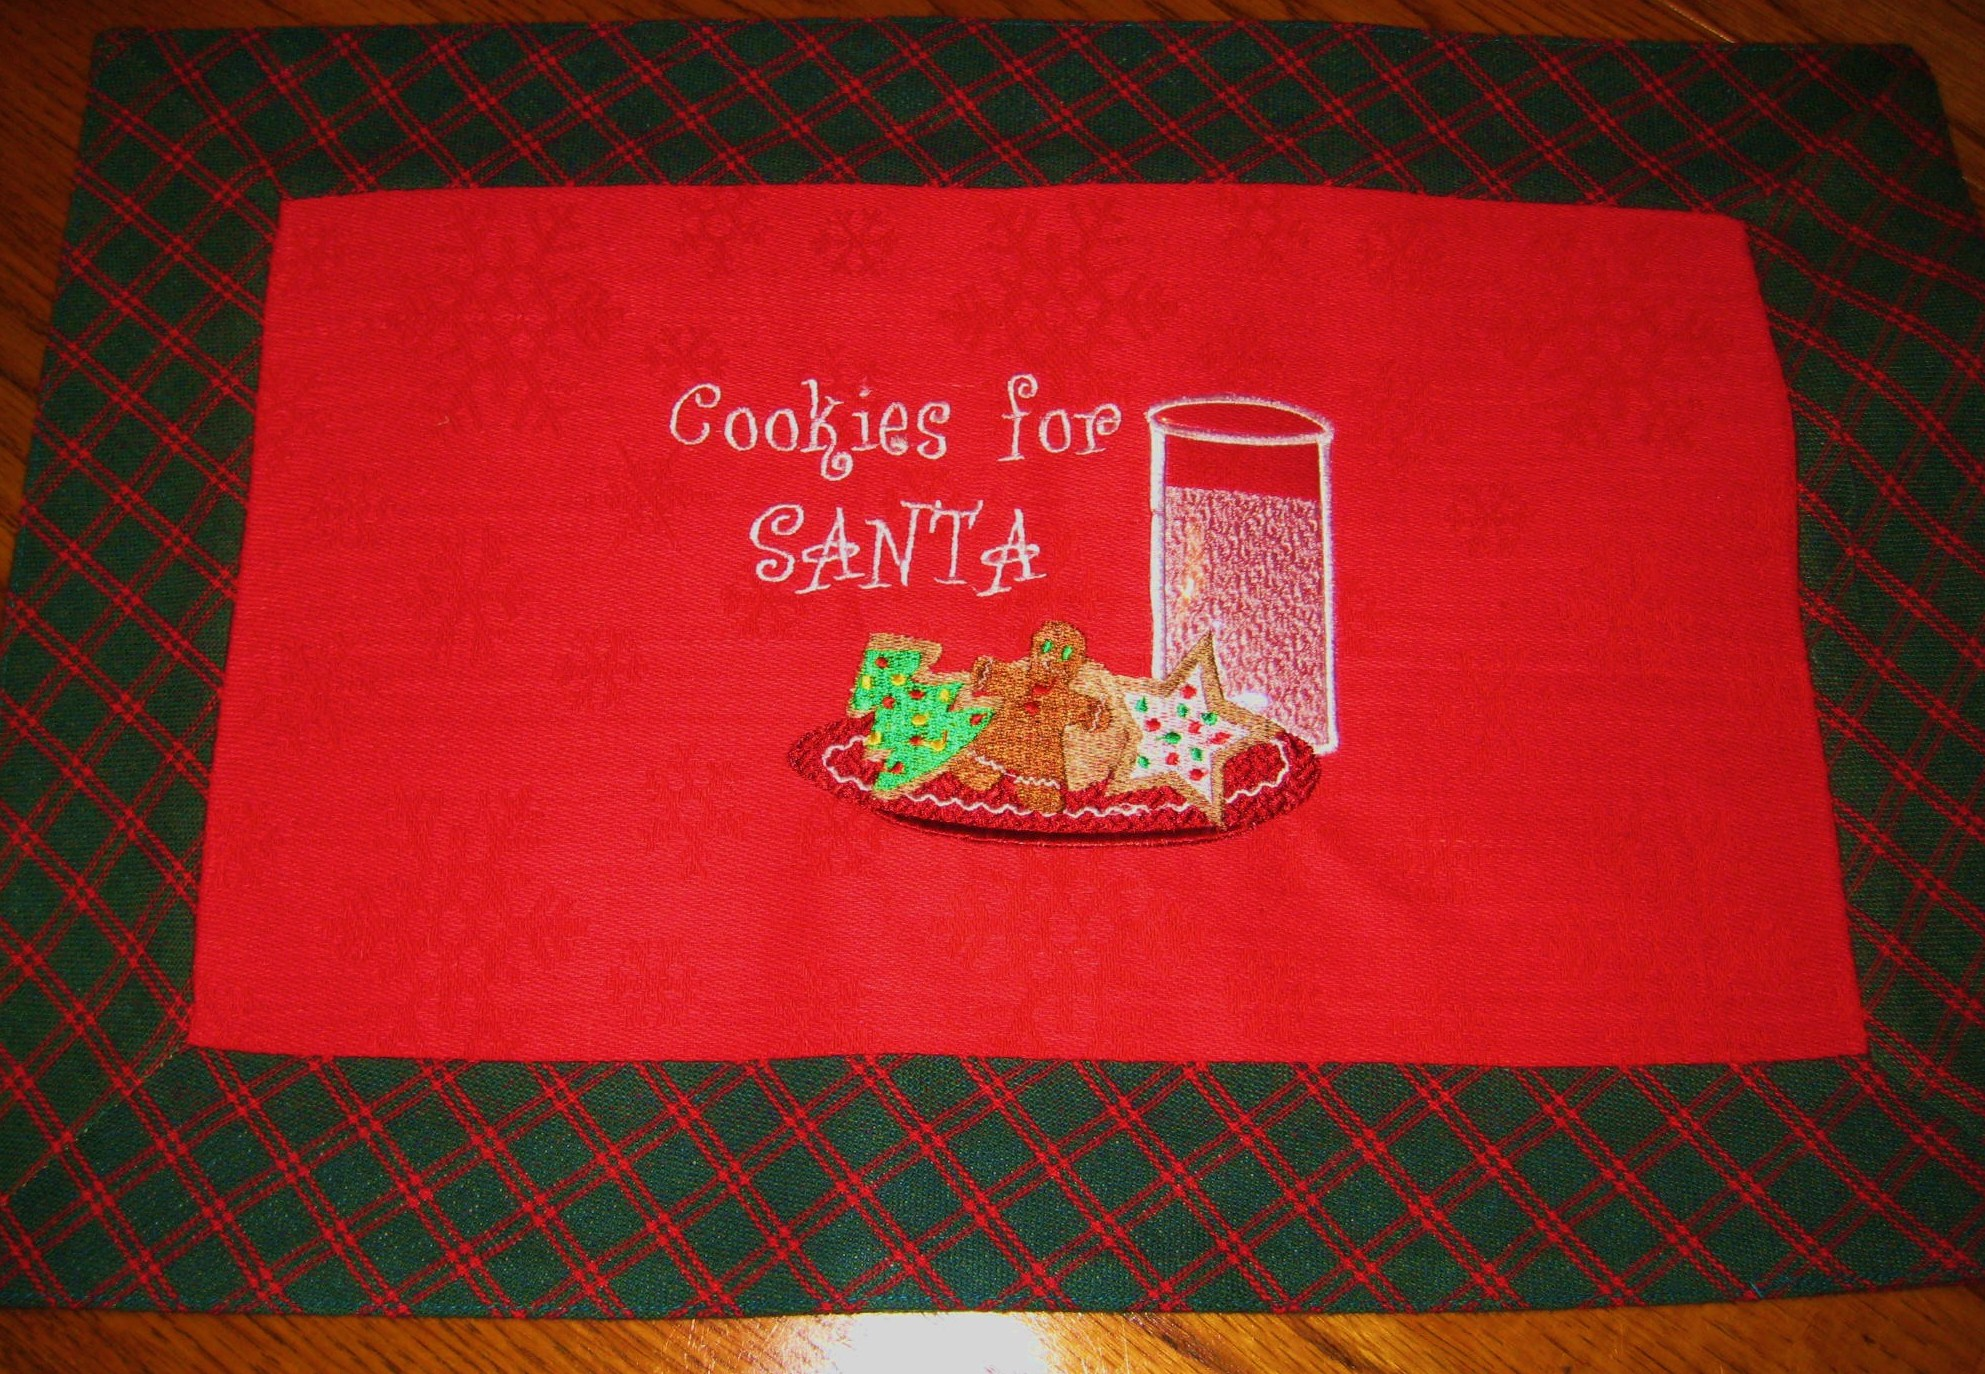 Stunning Cookies For Santa 1985 x 1374 · 734 kB · jpeg